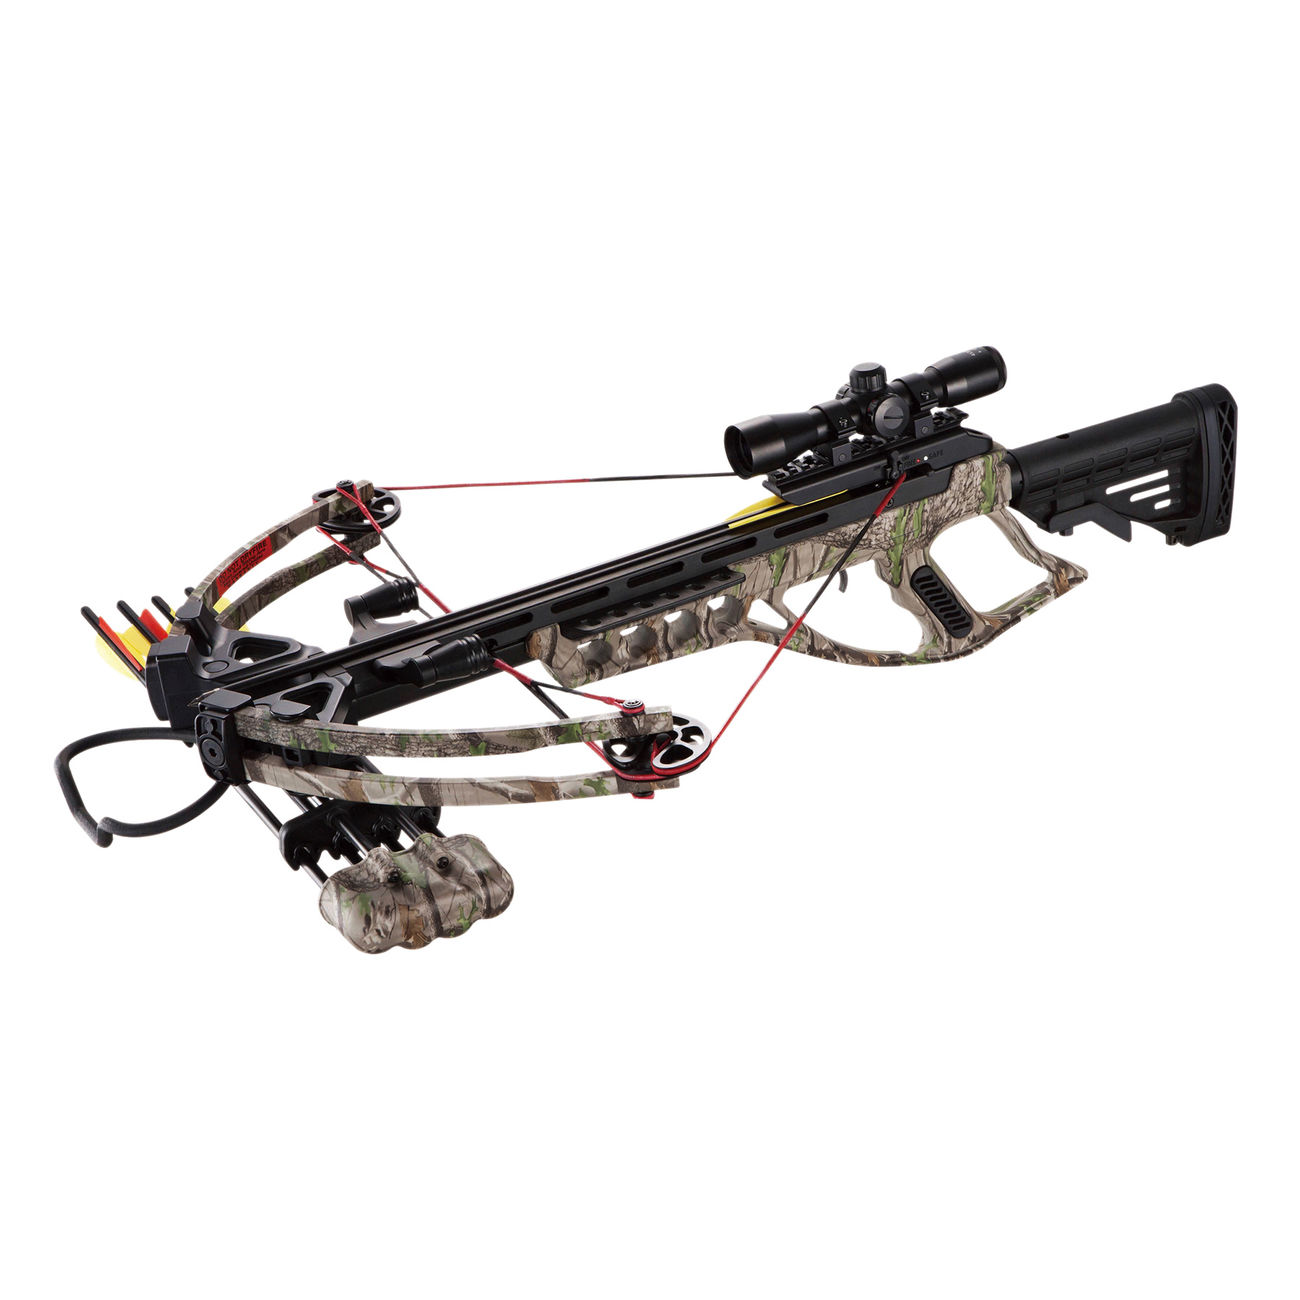 MK Compound Armbrust Goliath Komplettset 185 lbs Green Camo 1